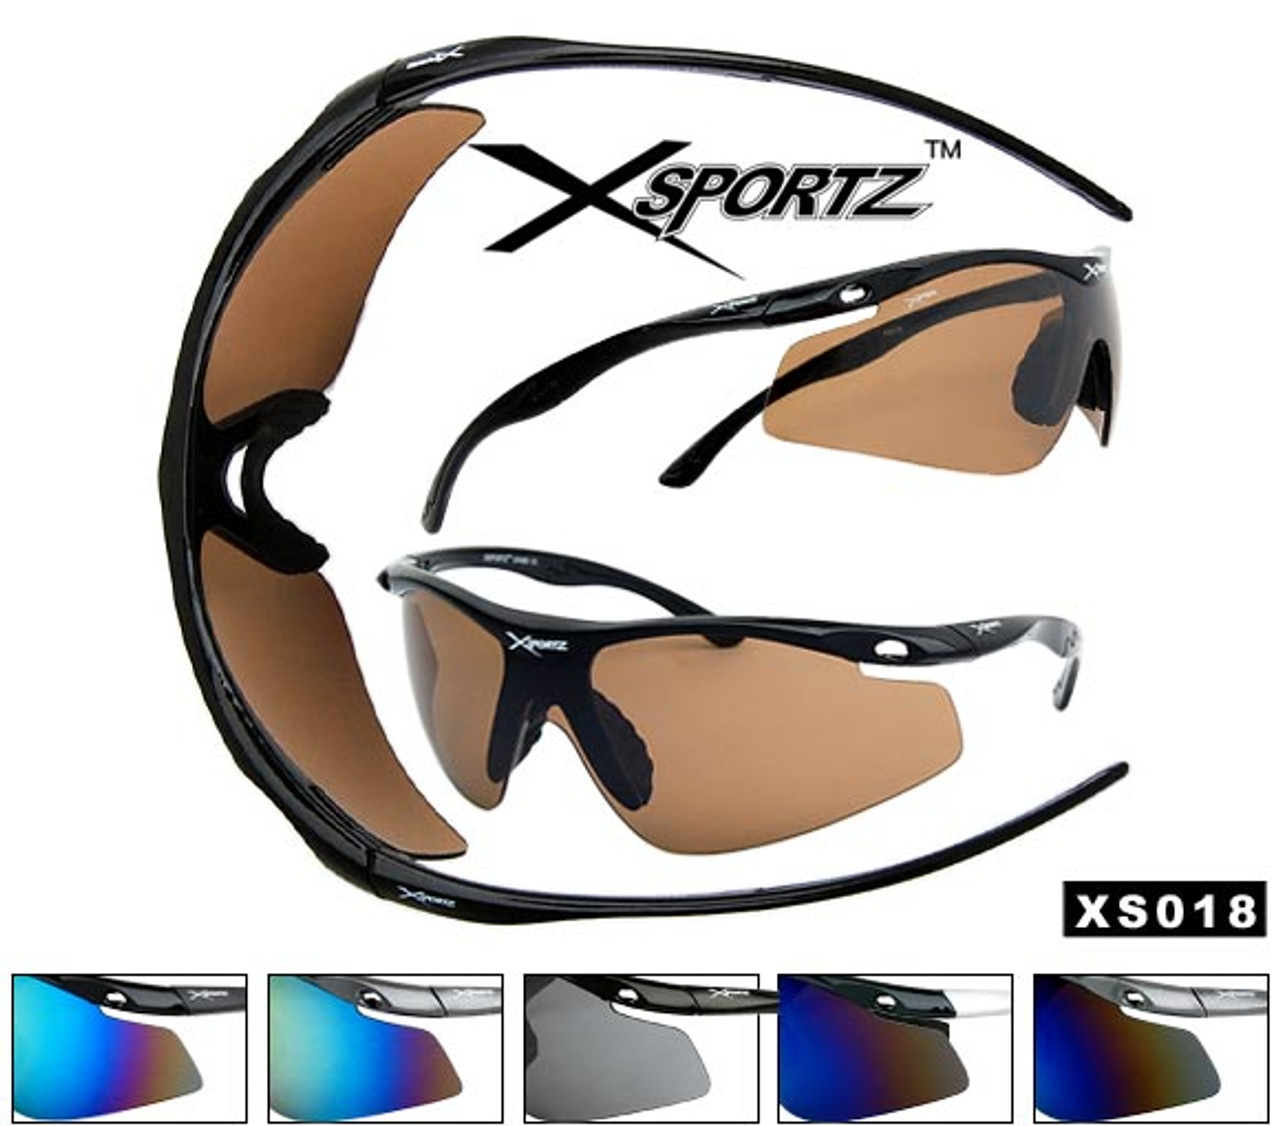 Xsportz Wholesale Sunglasses XS18 (Assorted Colors) (12 pcs.)